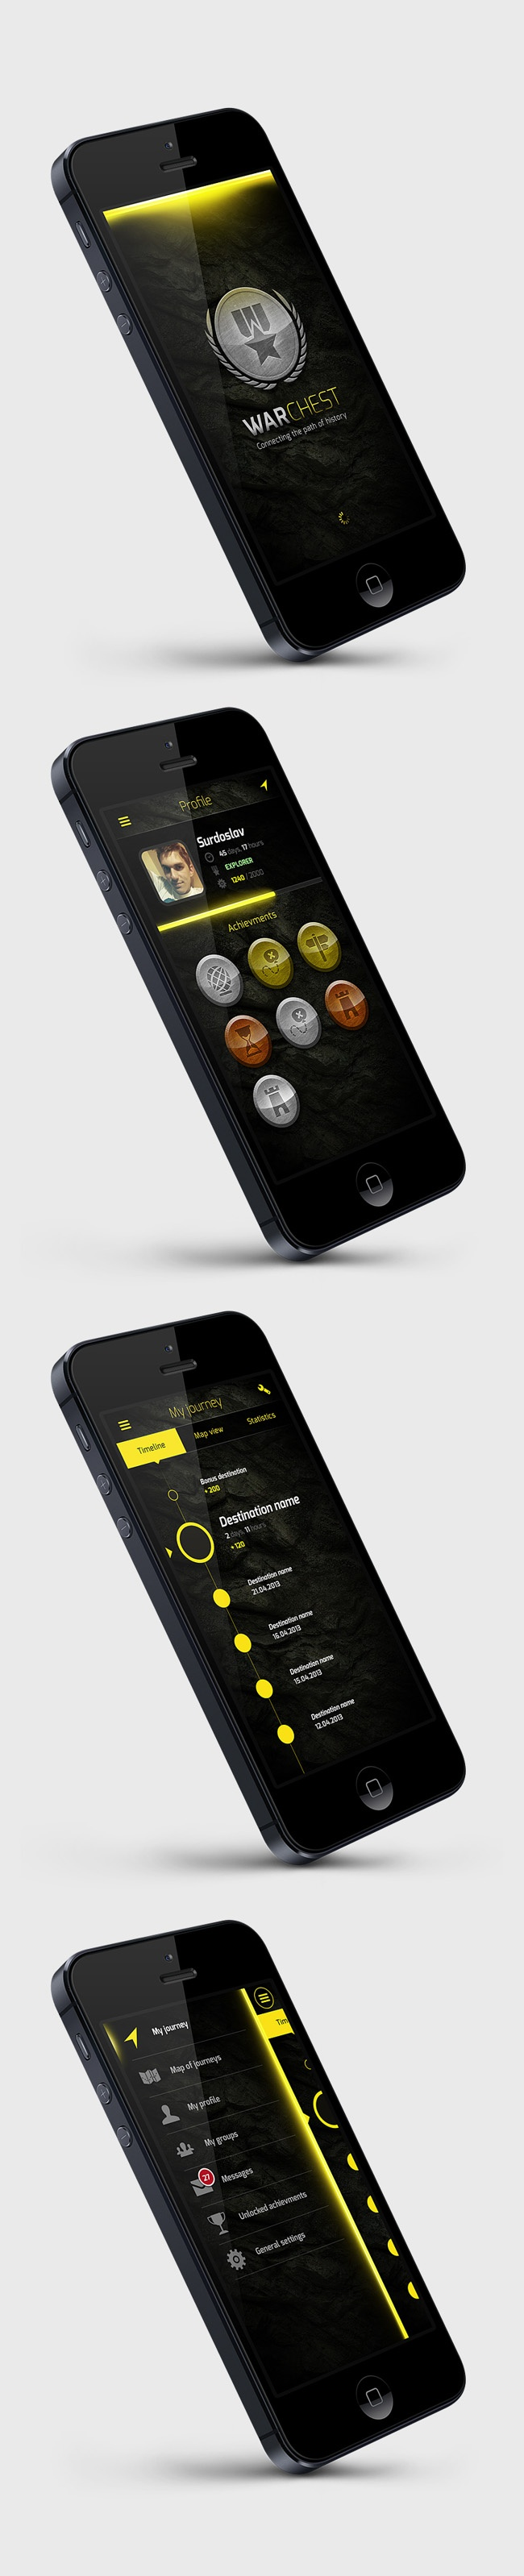 WarChest  Study by Martin Schurdak, via Behance *** few screens of a touristic app